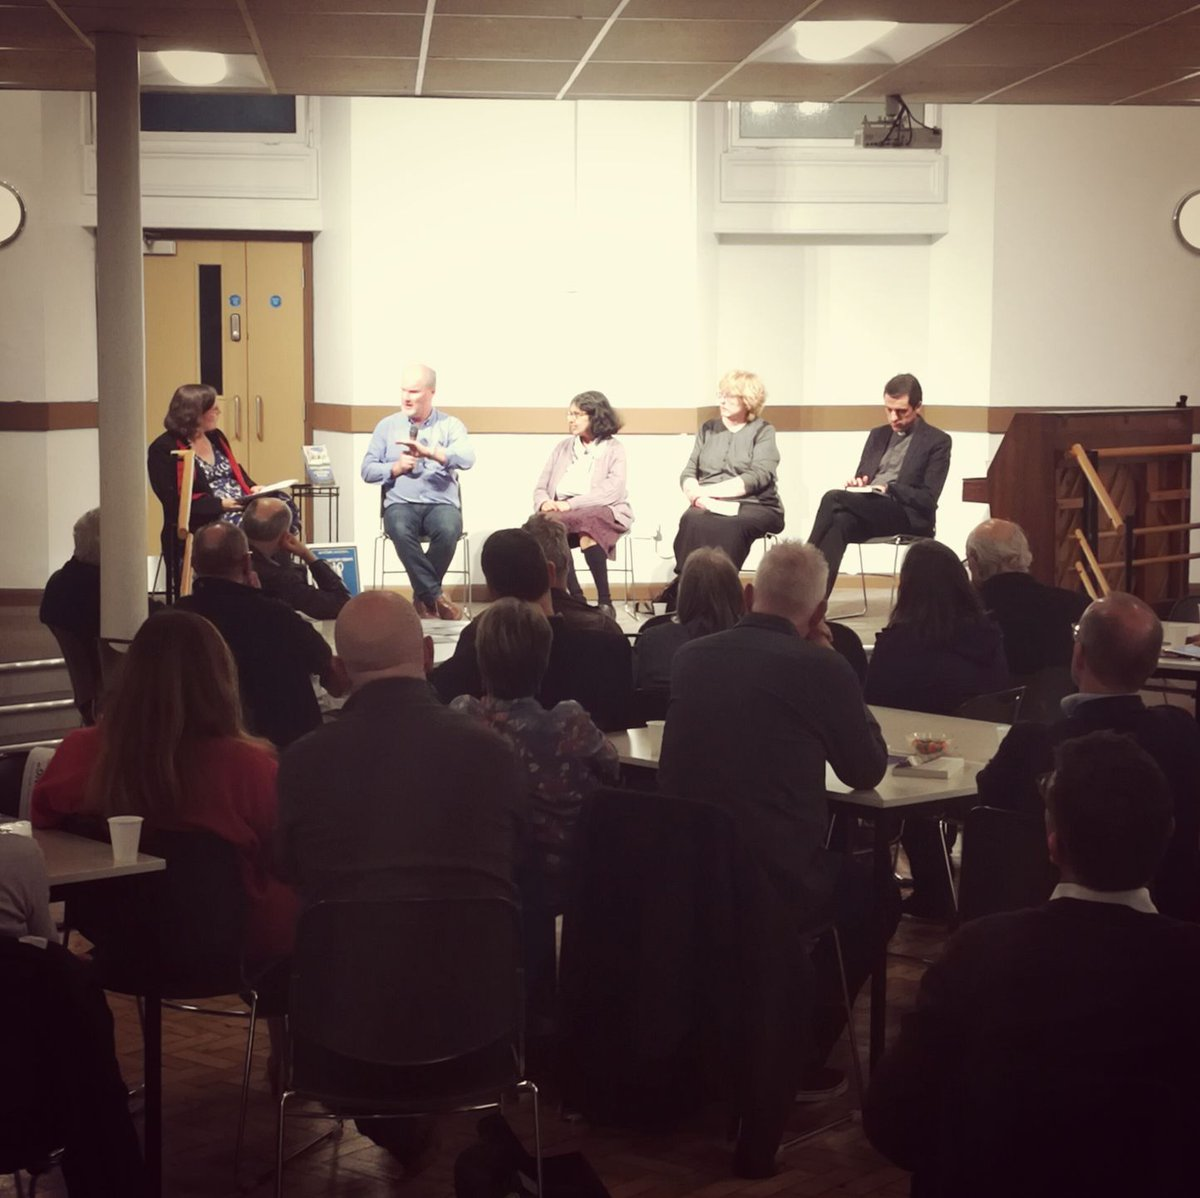 Fab panel incl @simonjduffy #sharing more about @vote4commongood #CommonGood @Bloomcentral<br>http://pic.twitter.com/NwuQCRPNda